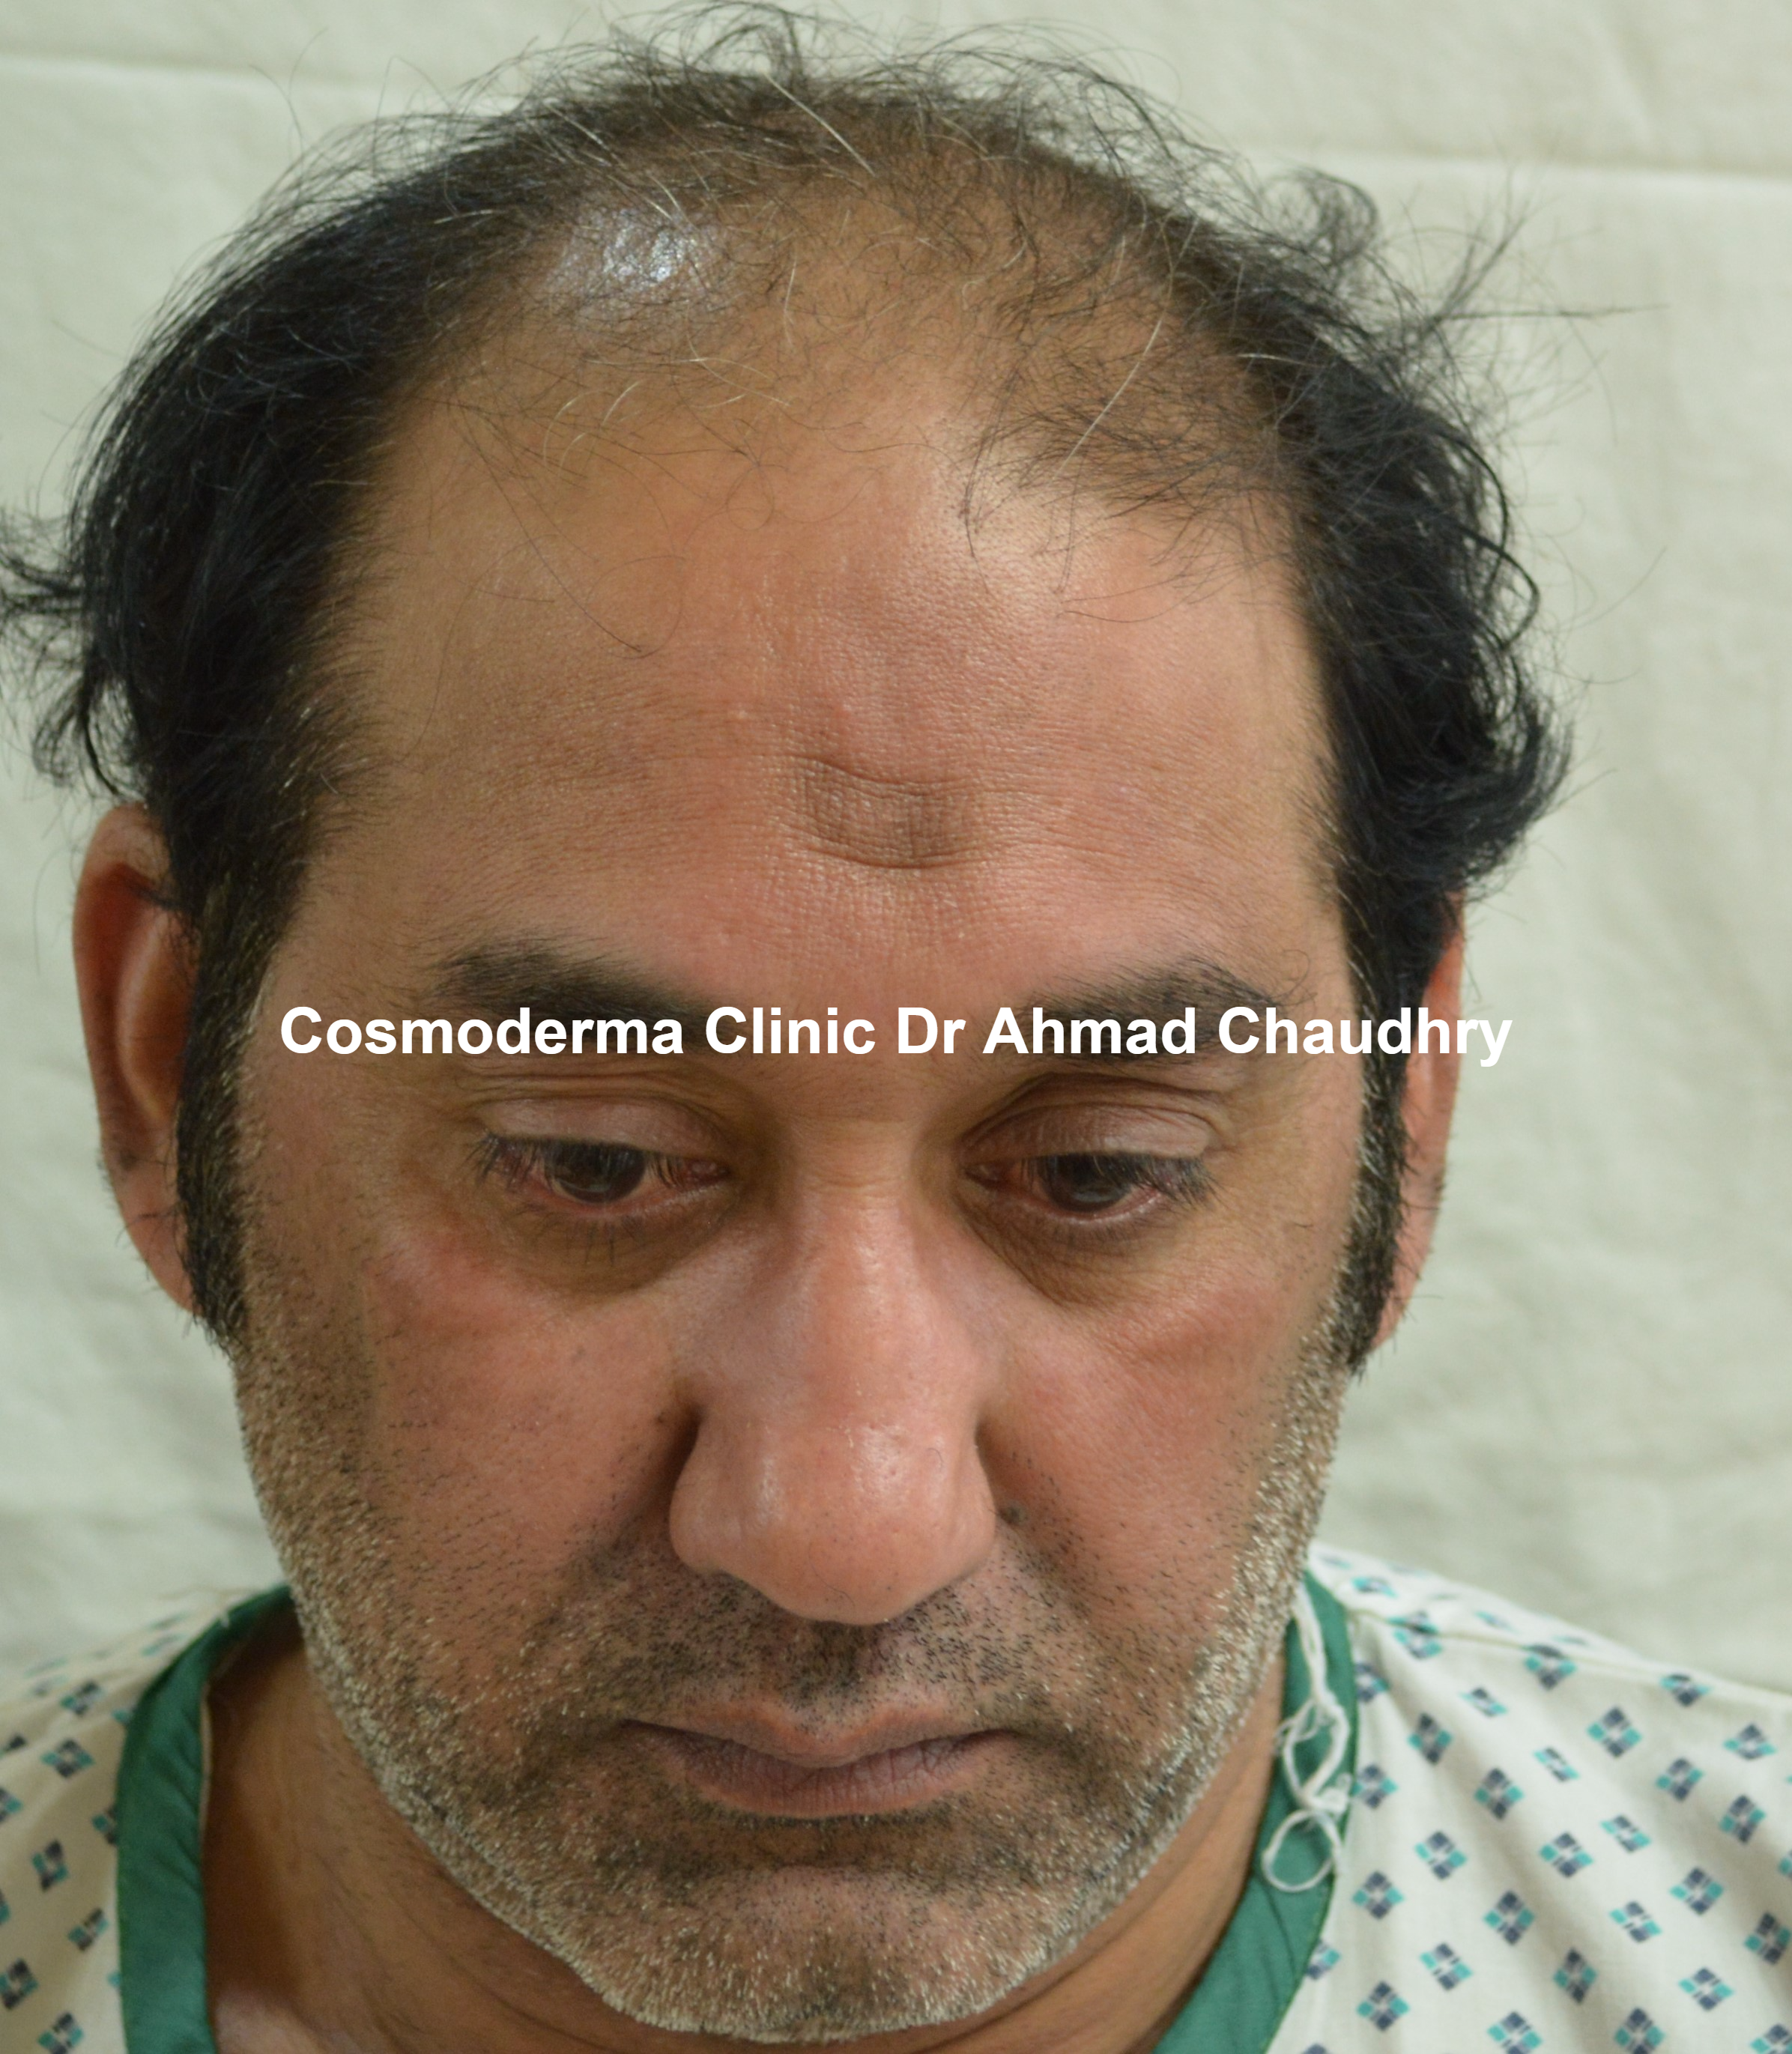 Diabetic patient before hair transplant